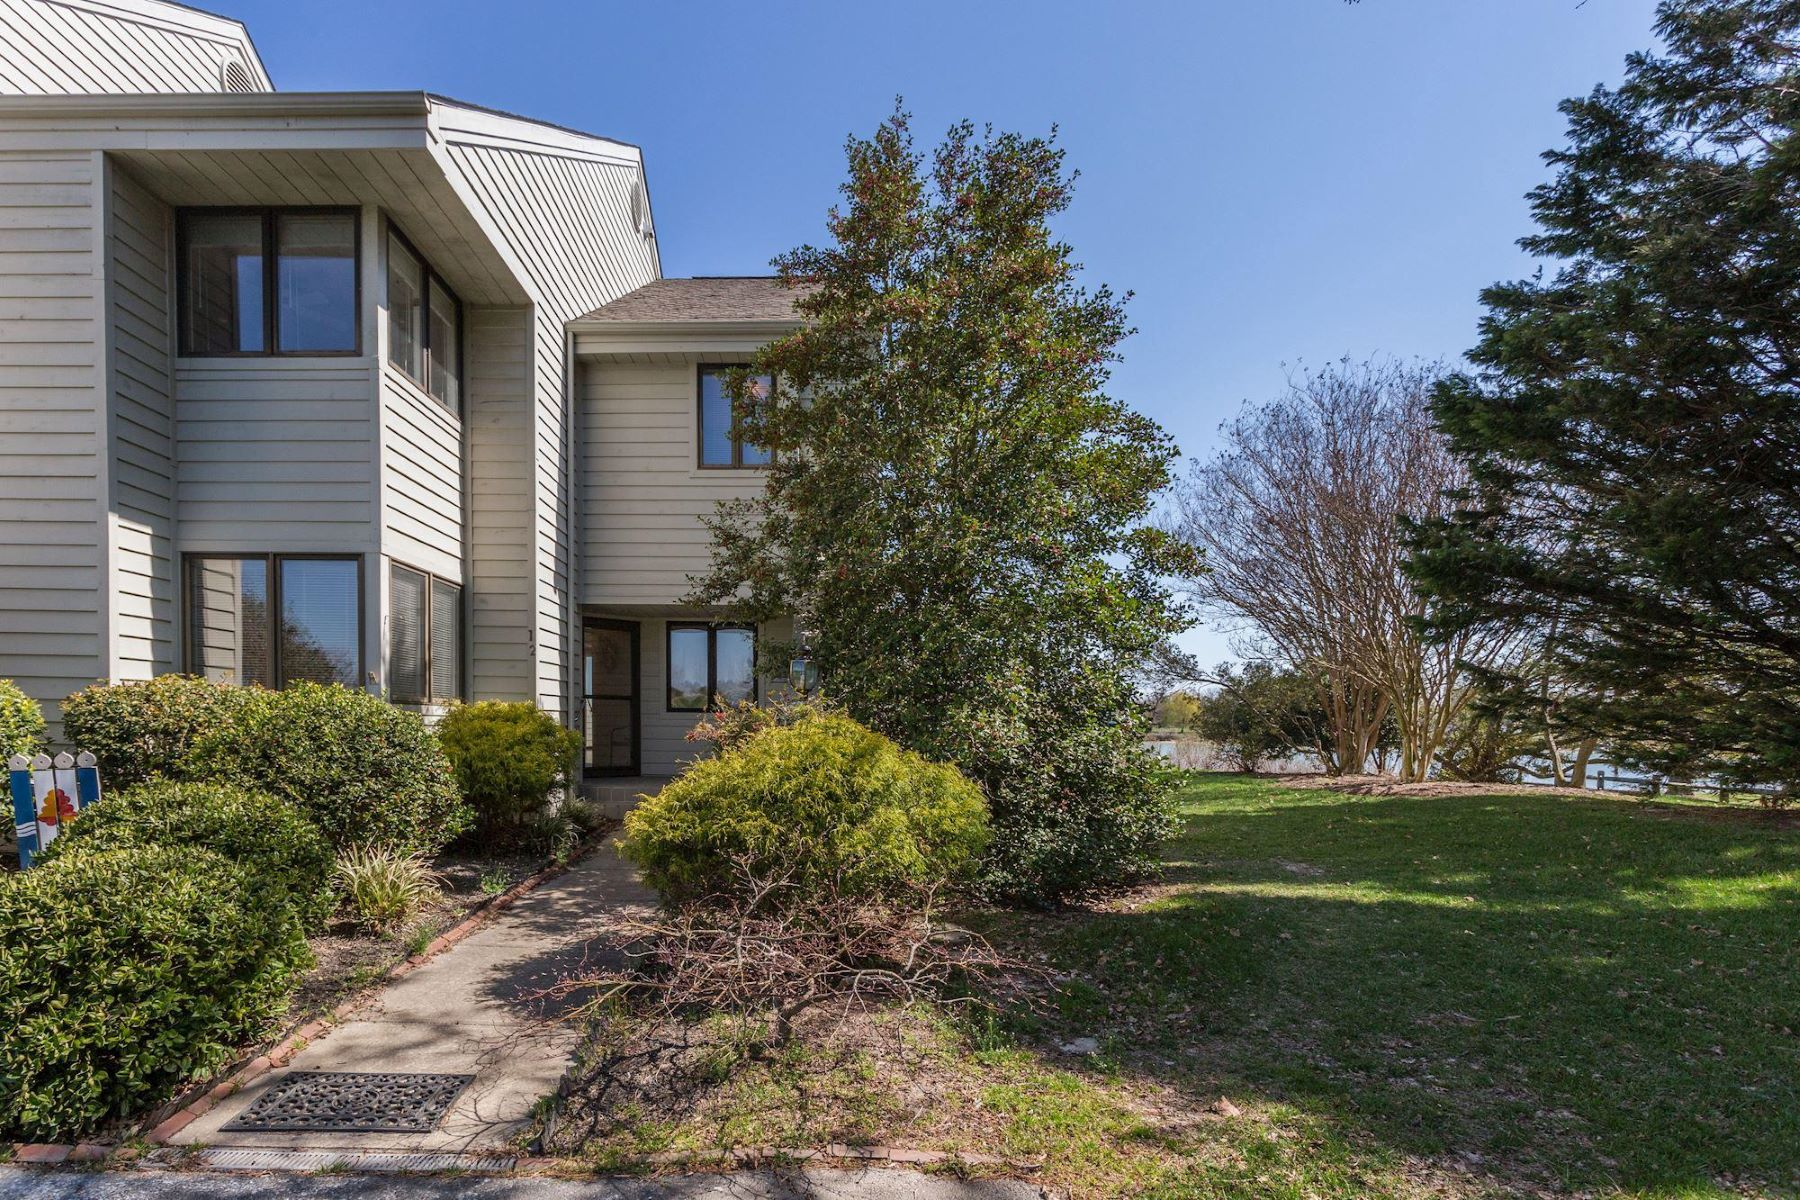 townhouses for Active at 9794 Martingham Cir #e6 St. Michaels, Maryland 21663 United States